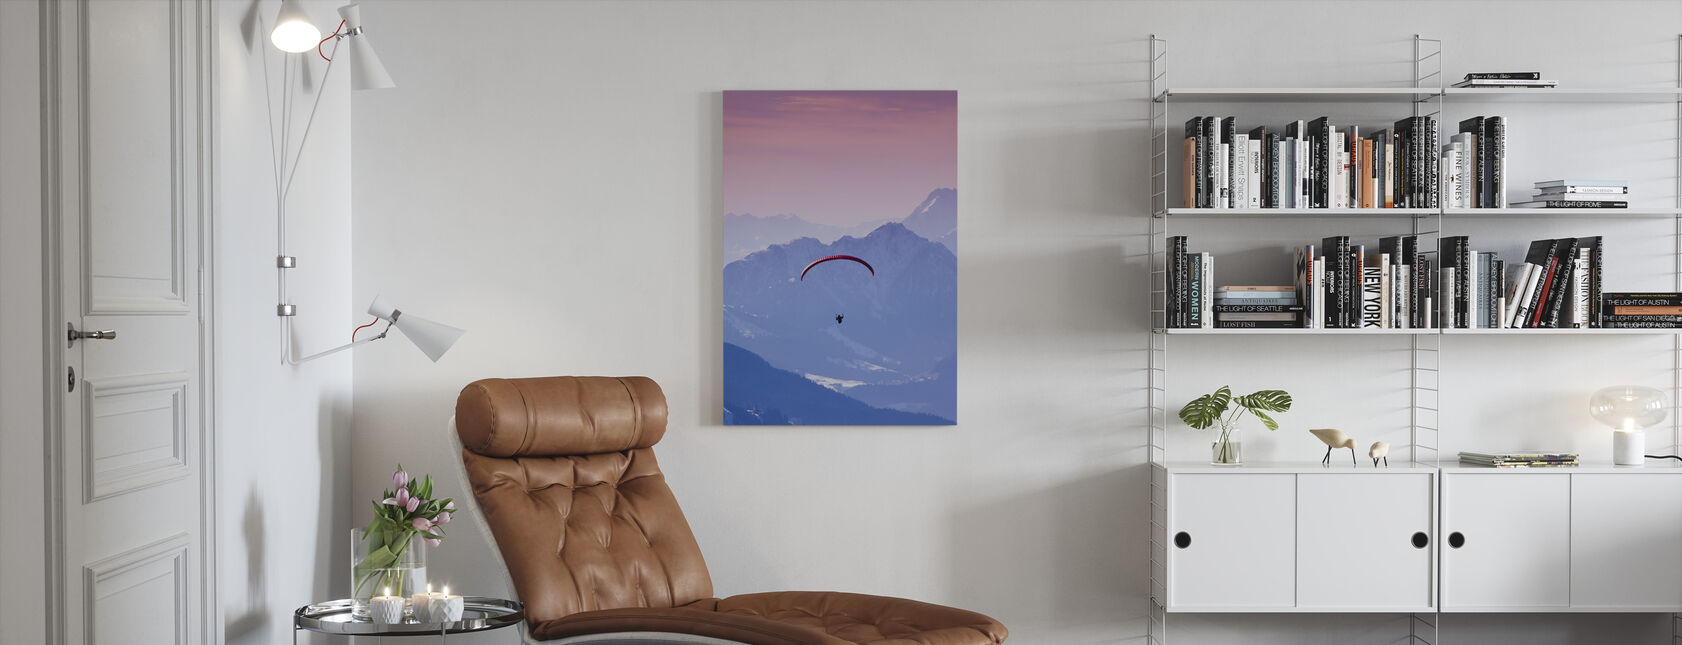 Kite in Hopfgarten, Austria - Canvas print - Living Room